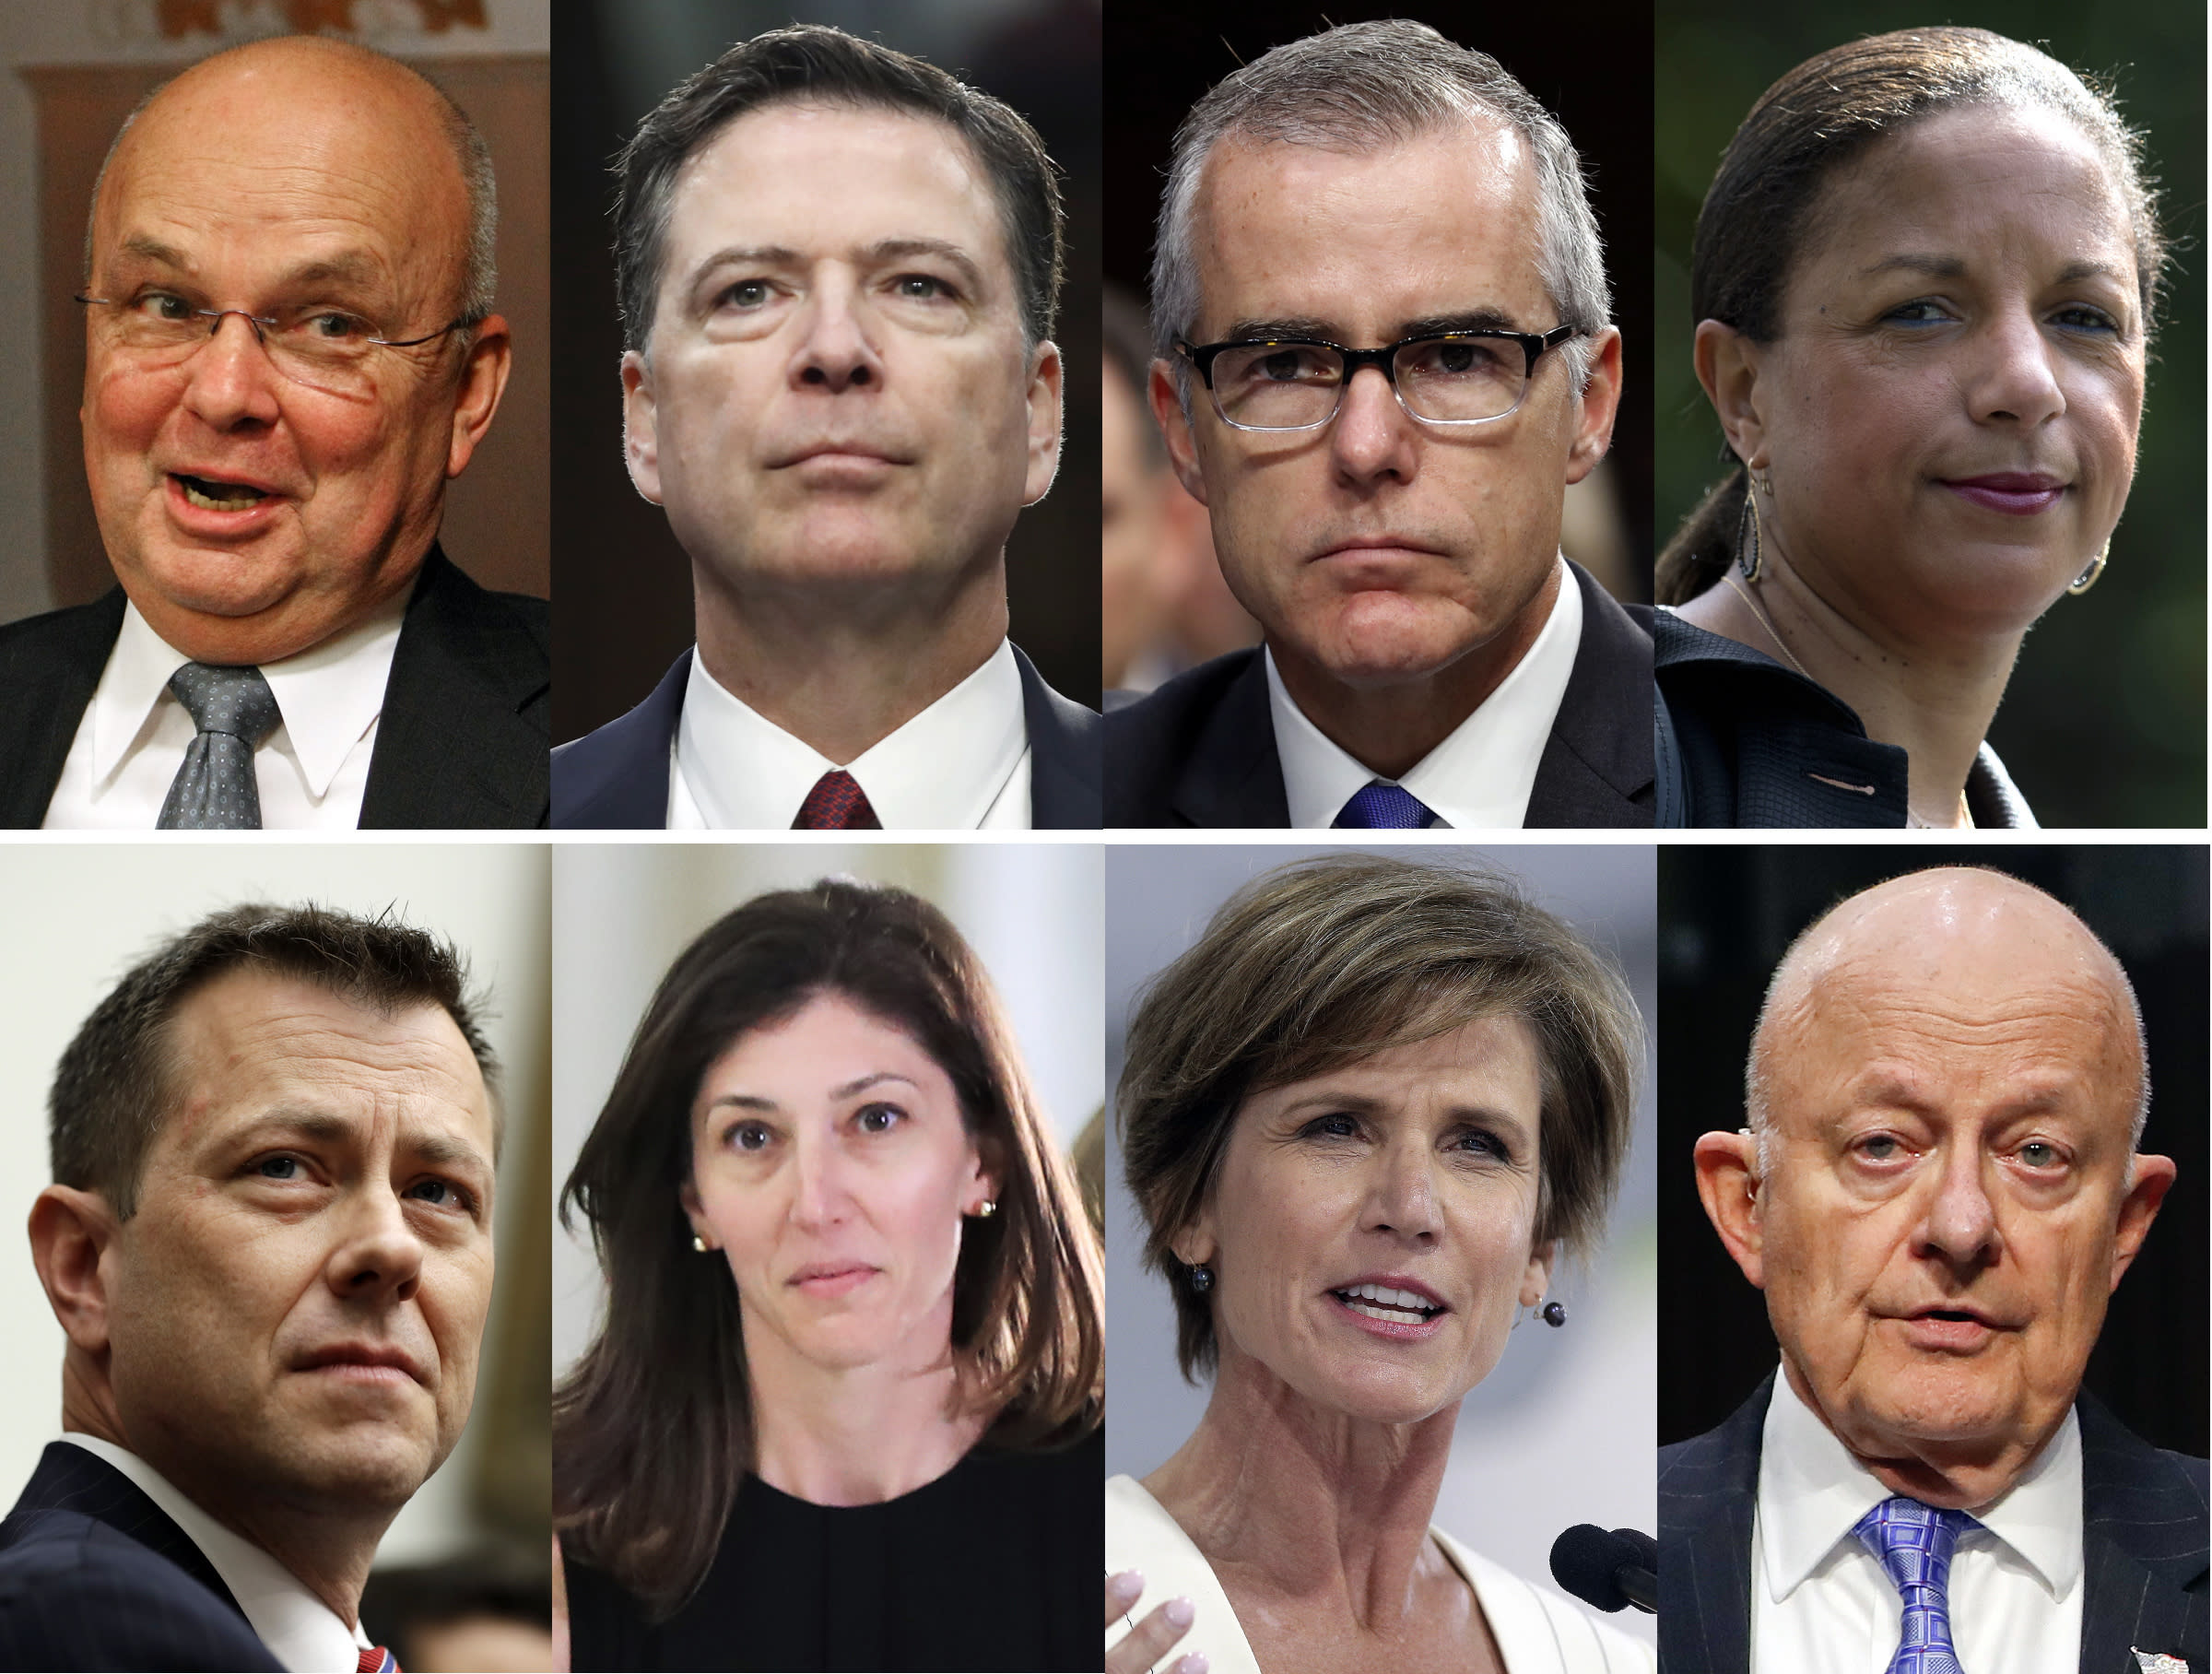 Trump S List Those Who Might Lose Their Security Clearance